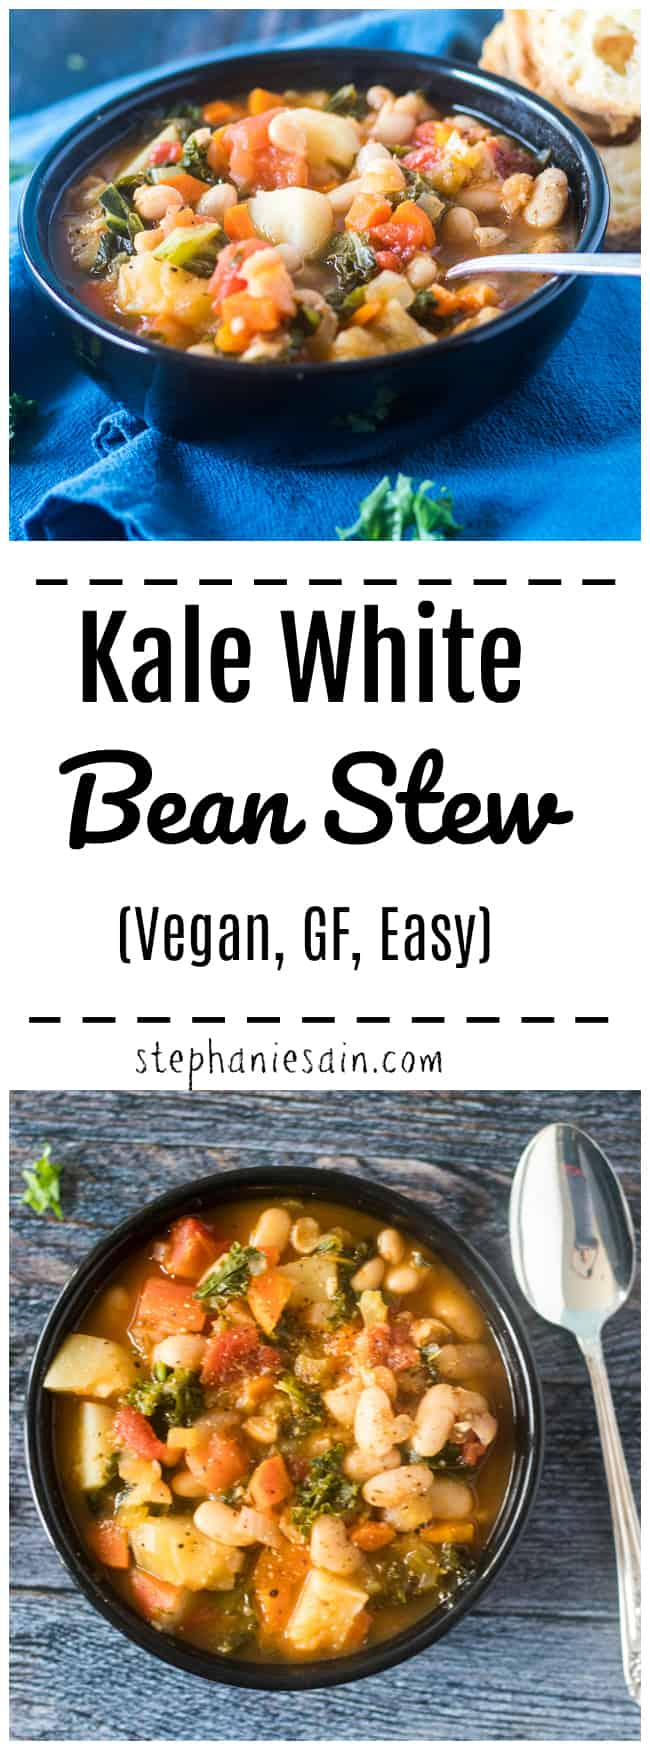 This Bean Stew is easy to make and a warm hearty bowl of comfort food for busy nights. Can also be made ahead and re-heated. Chocked full of a healthy array of veggies including white beans and kale. Gluten free, Vegan, Dairy free